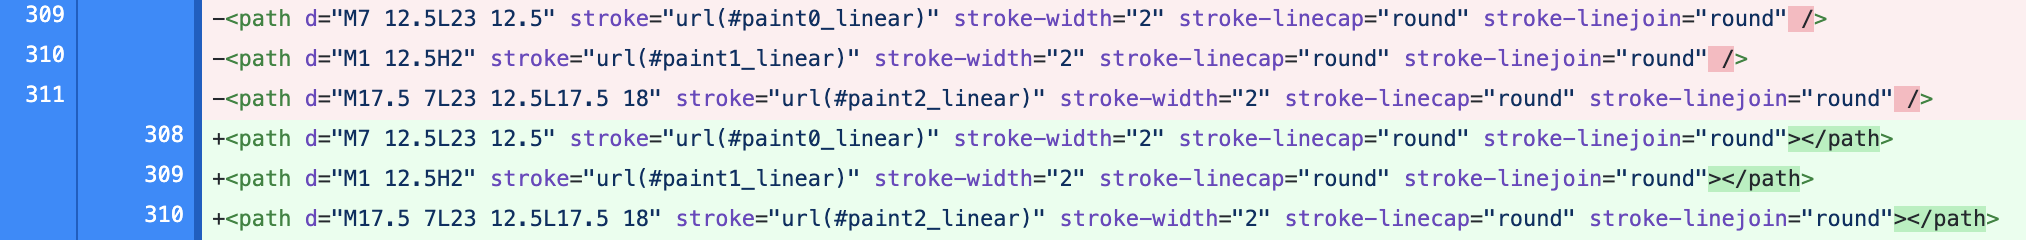 Screenshot of file diff showing how SVG tags were converted to explicitly closed tag instead of an self closed tag.